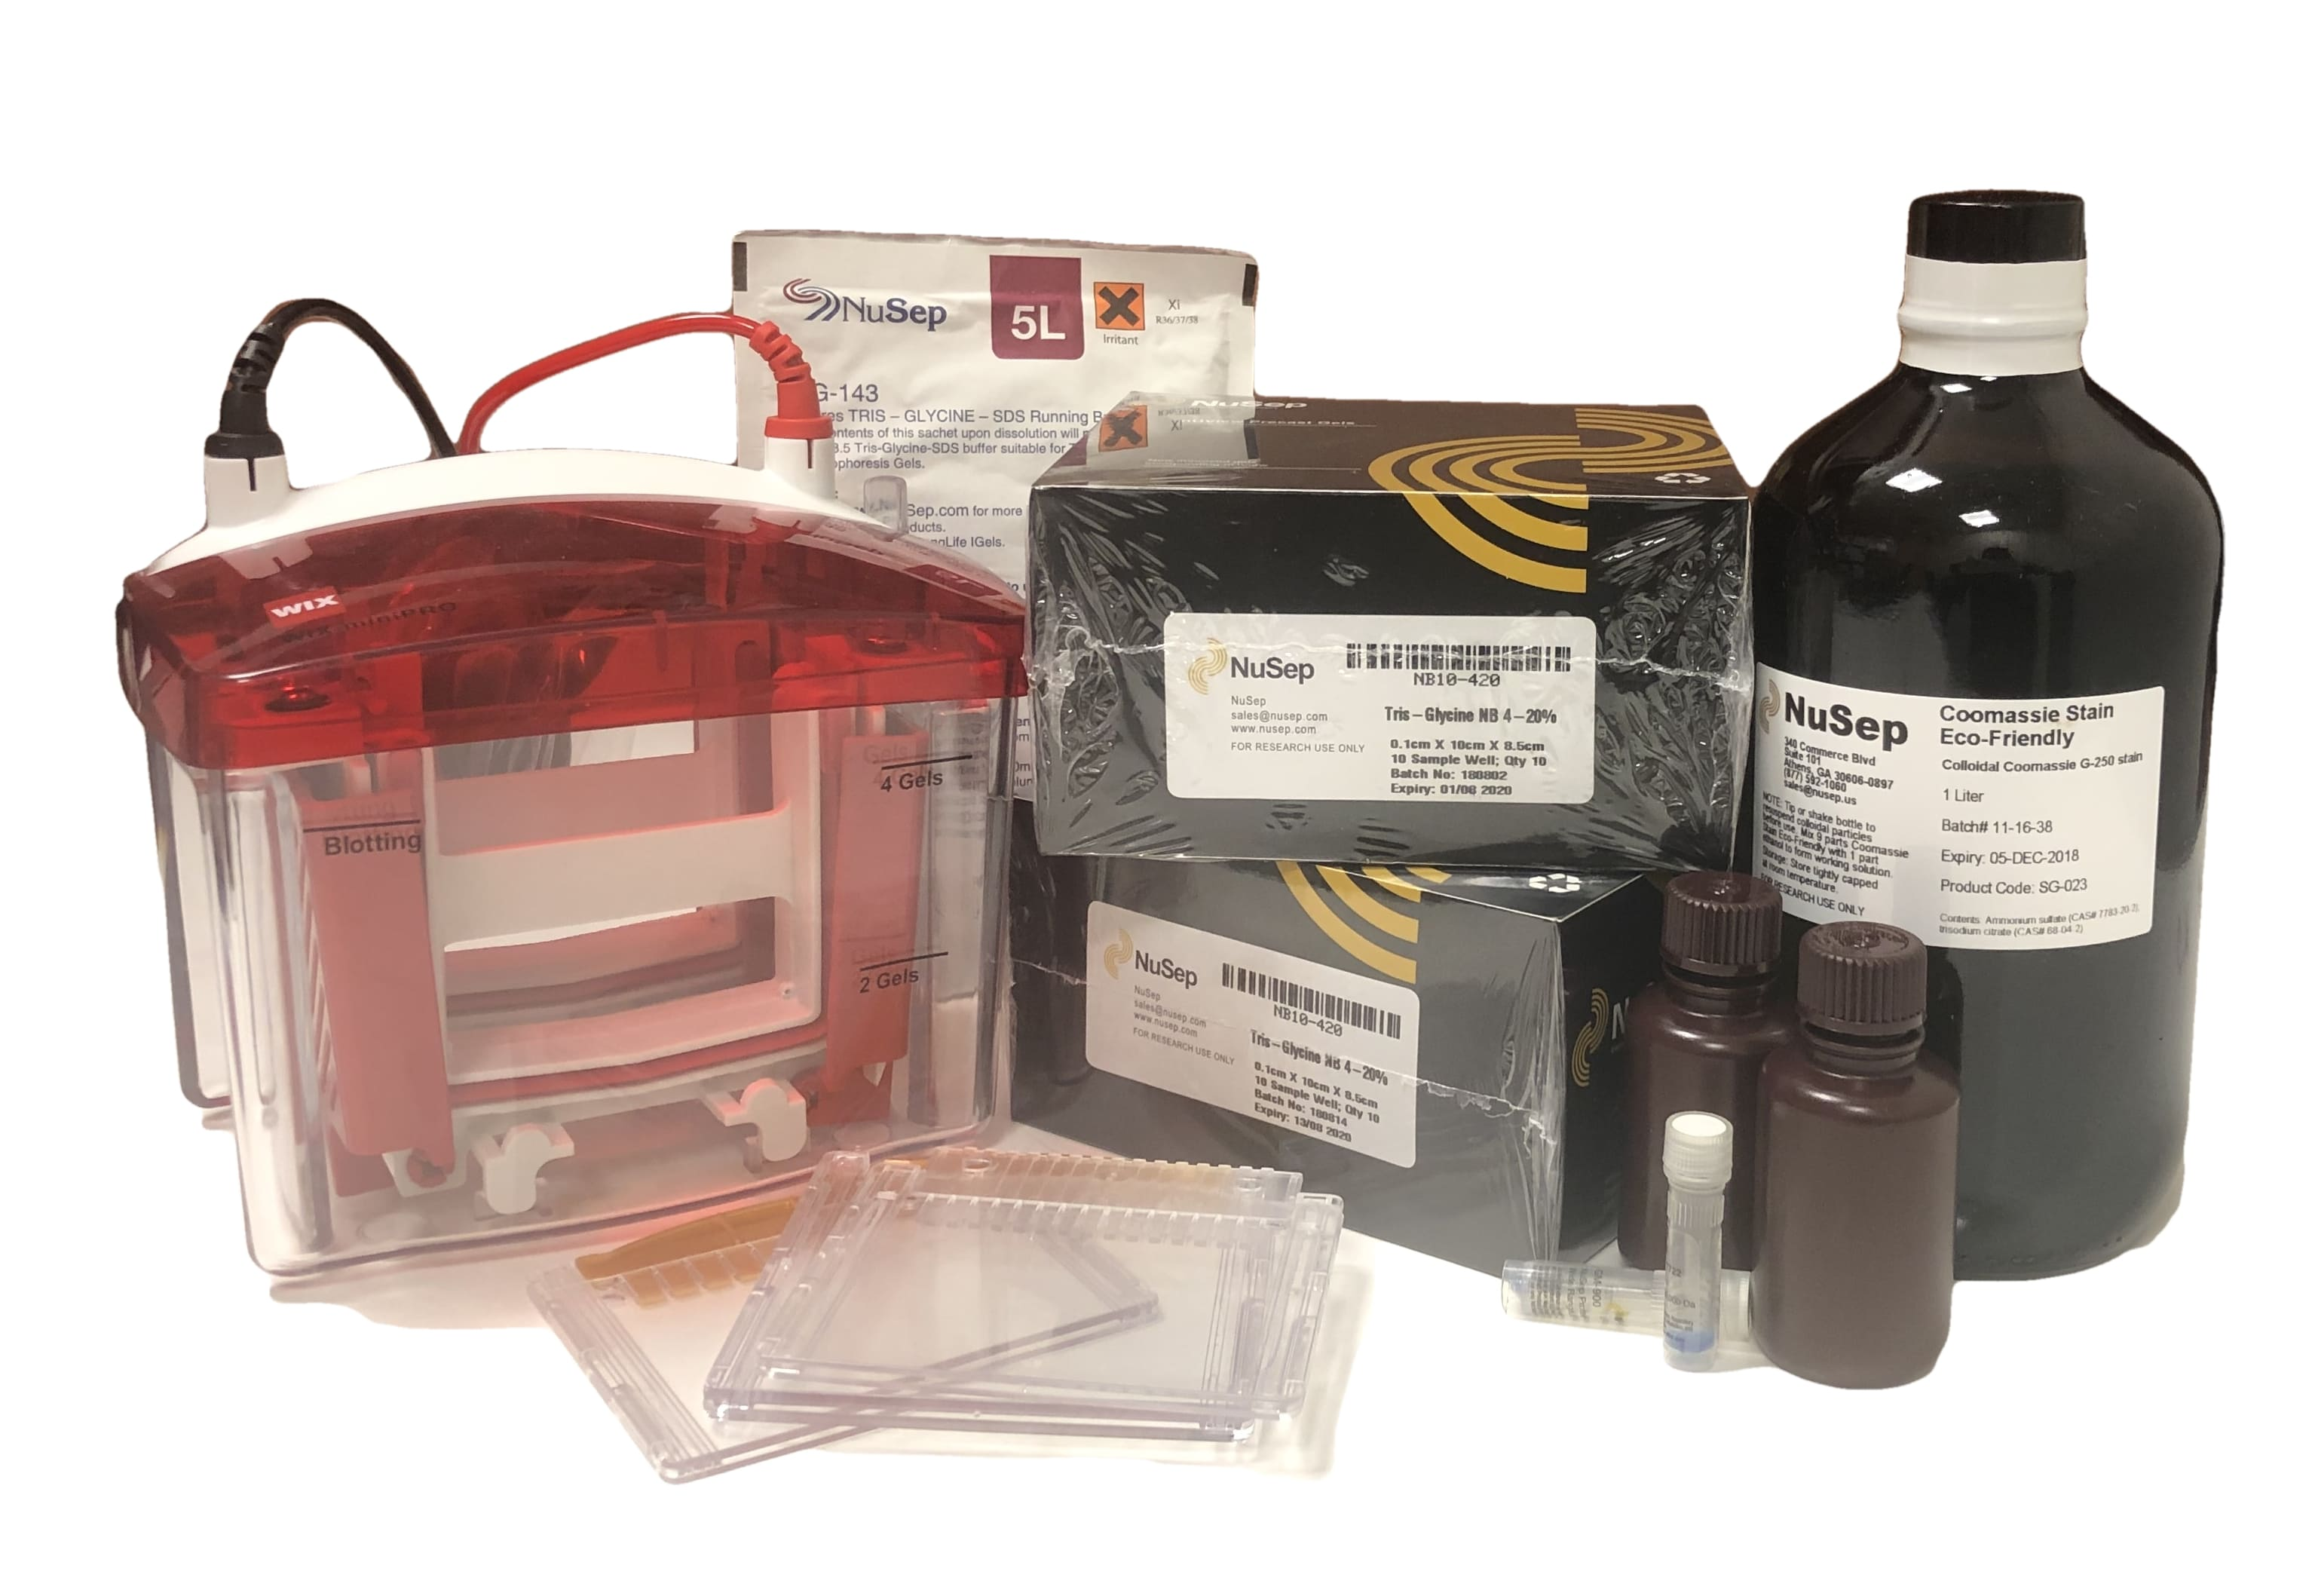 Protein Electrophoresis Supplies - precast gels, gel tank, stain, and buffers